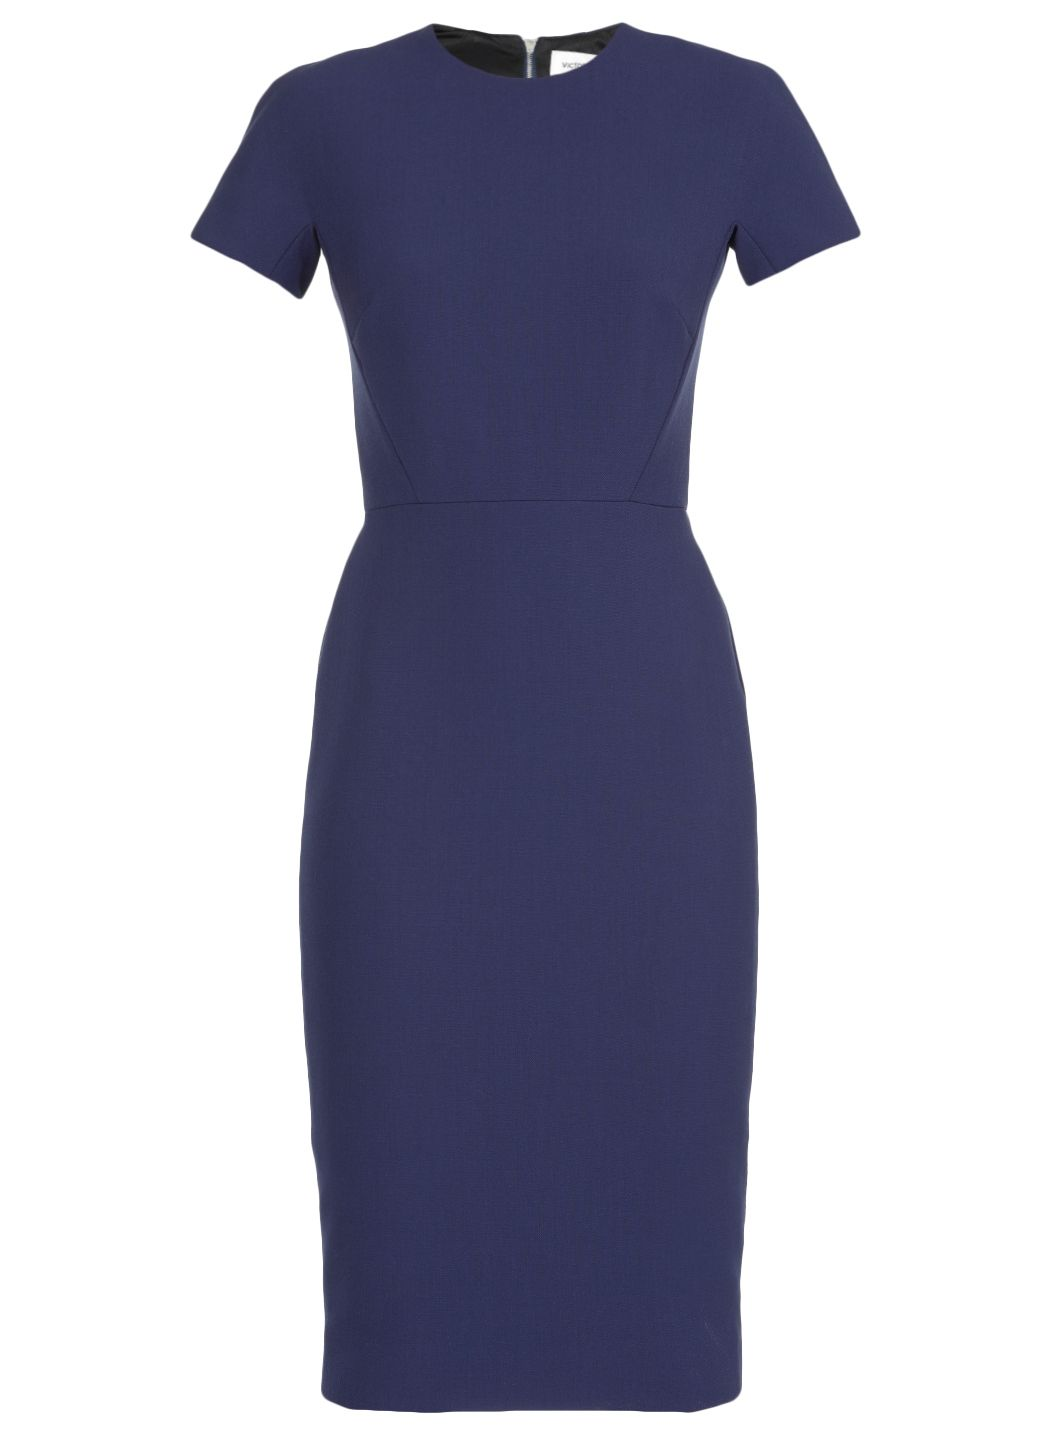 Fitted T-shirt Dress in Indigo